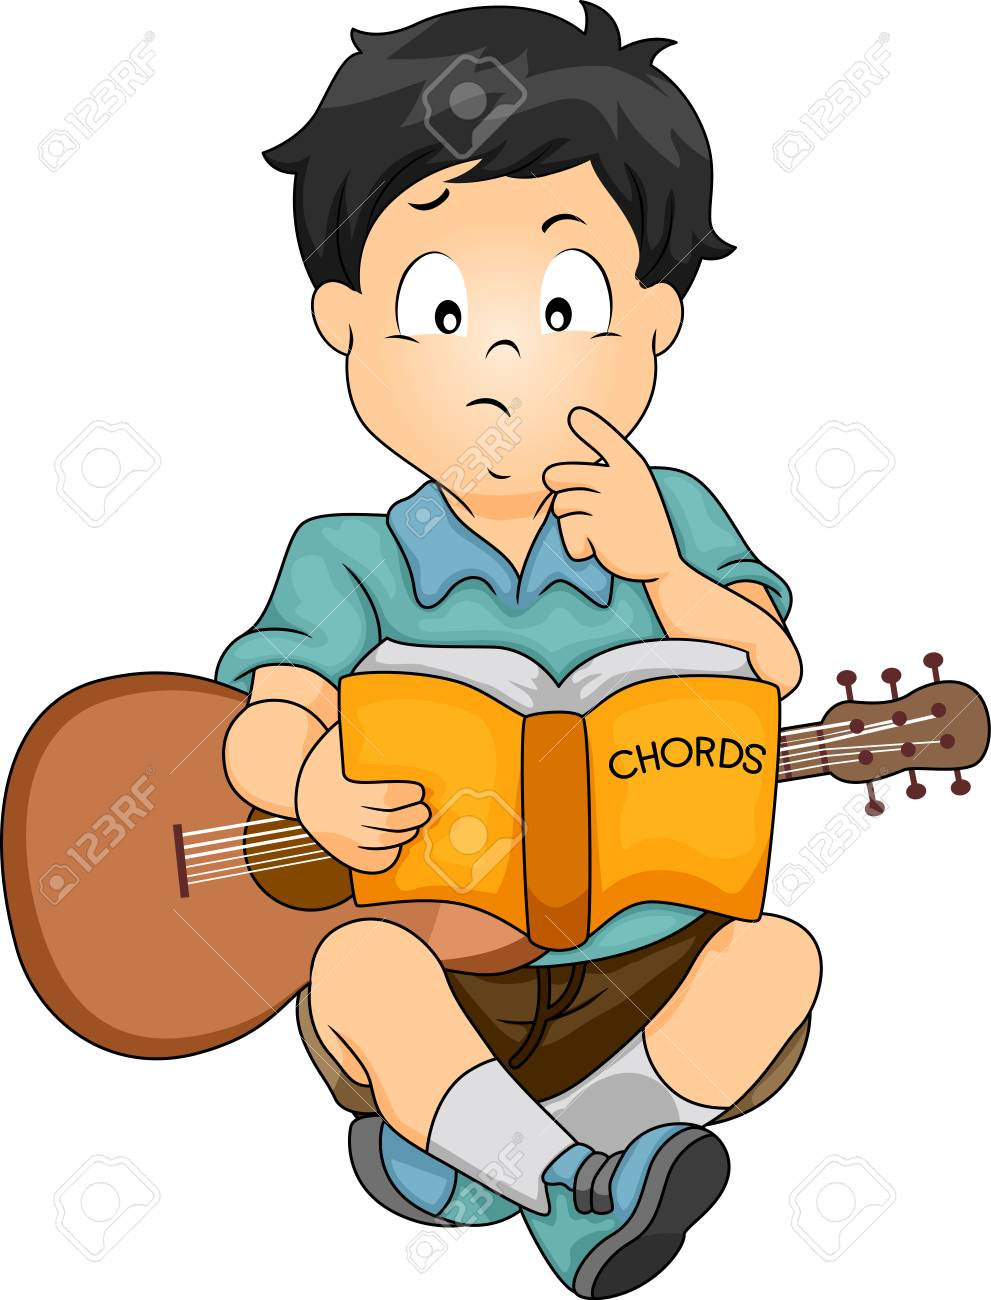 Illustration Featuring A Confused Boy With A Guitar On His Lap